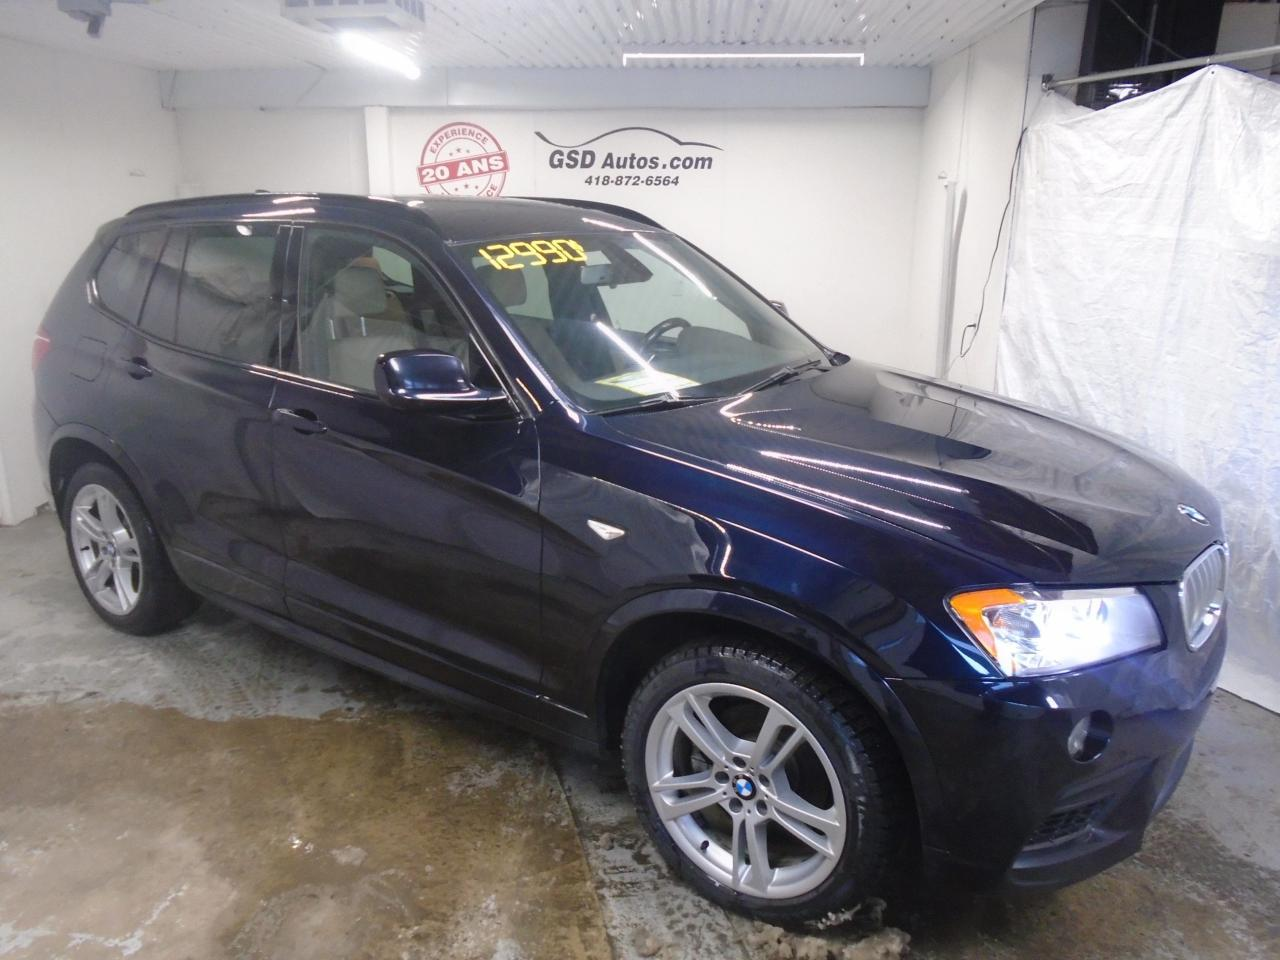 Used 2012 Bmw X3 Xdrive35i For Sale In Ancienne Lorette